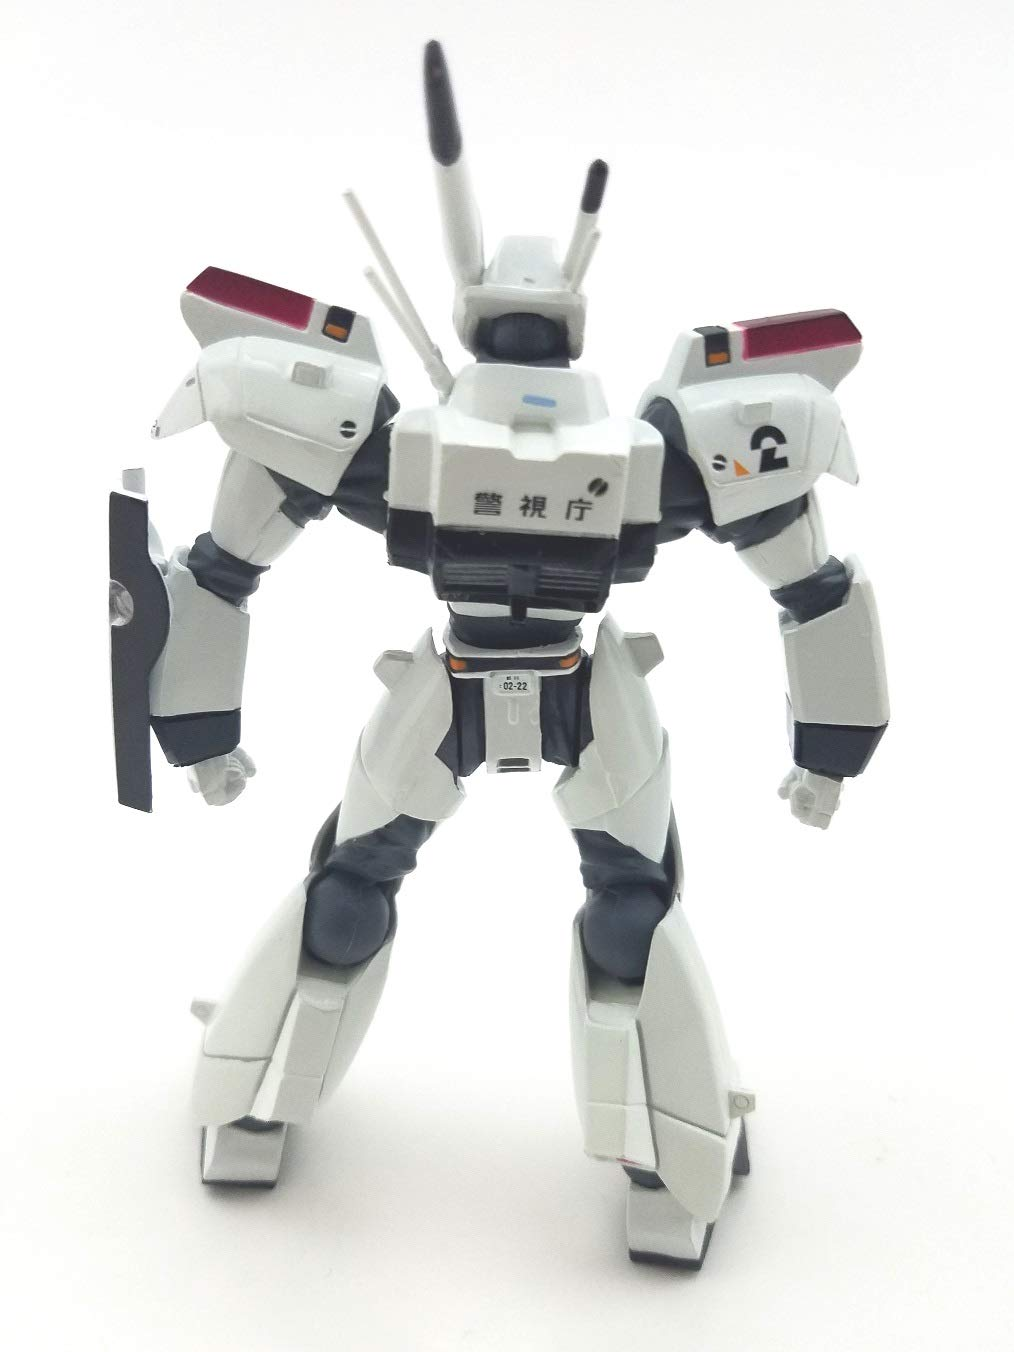 Kaiyodo Revoltech AV-98 Ingram 2 Series No.014 Action Figure